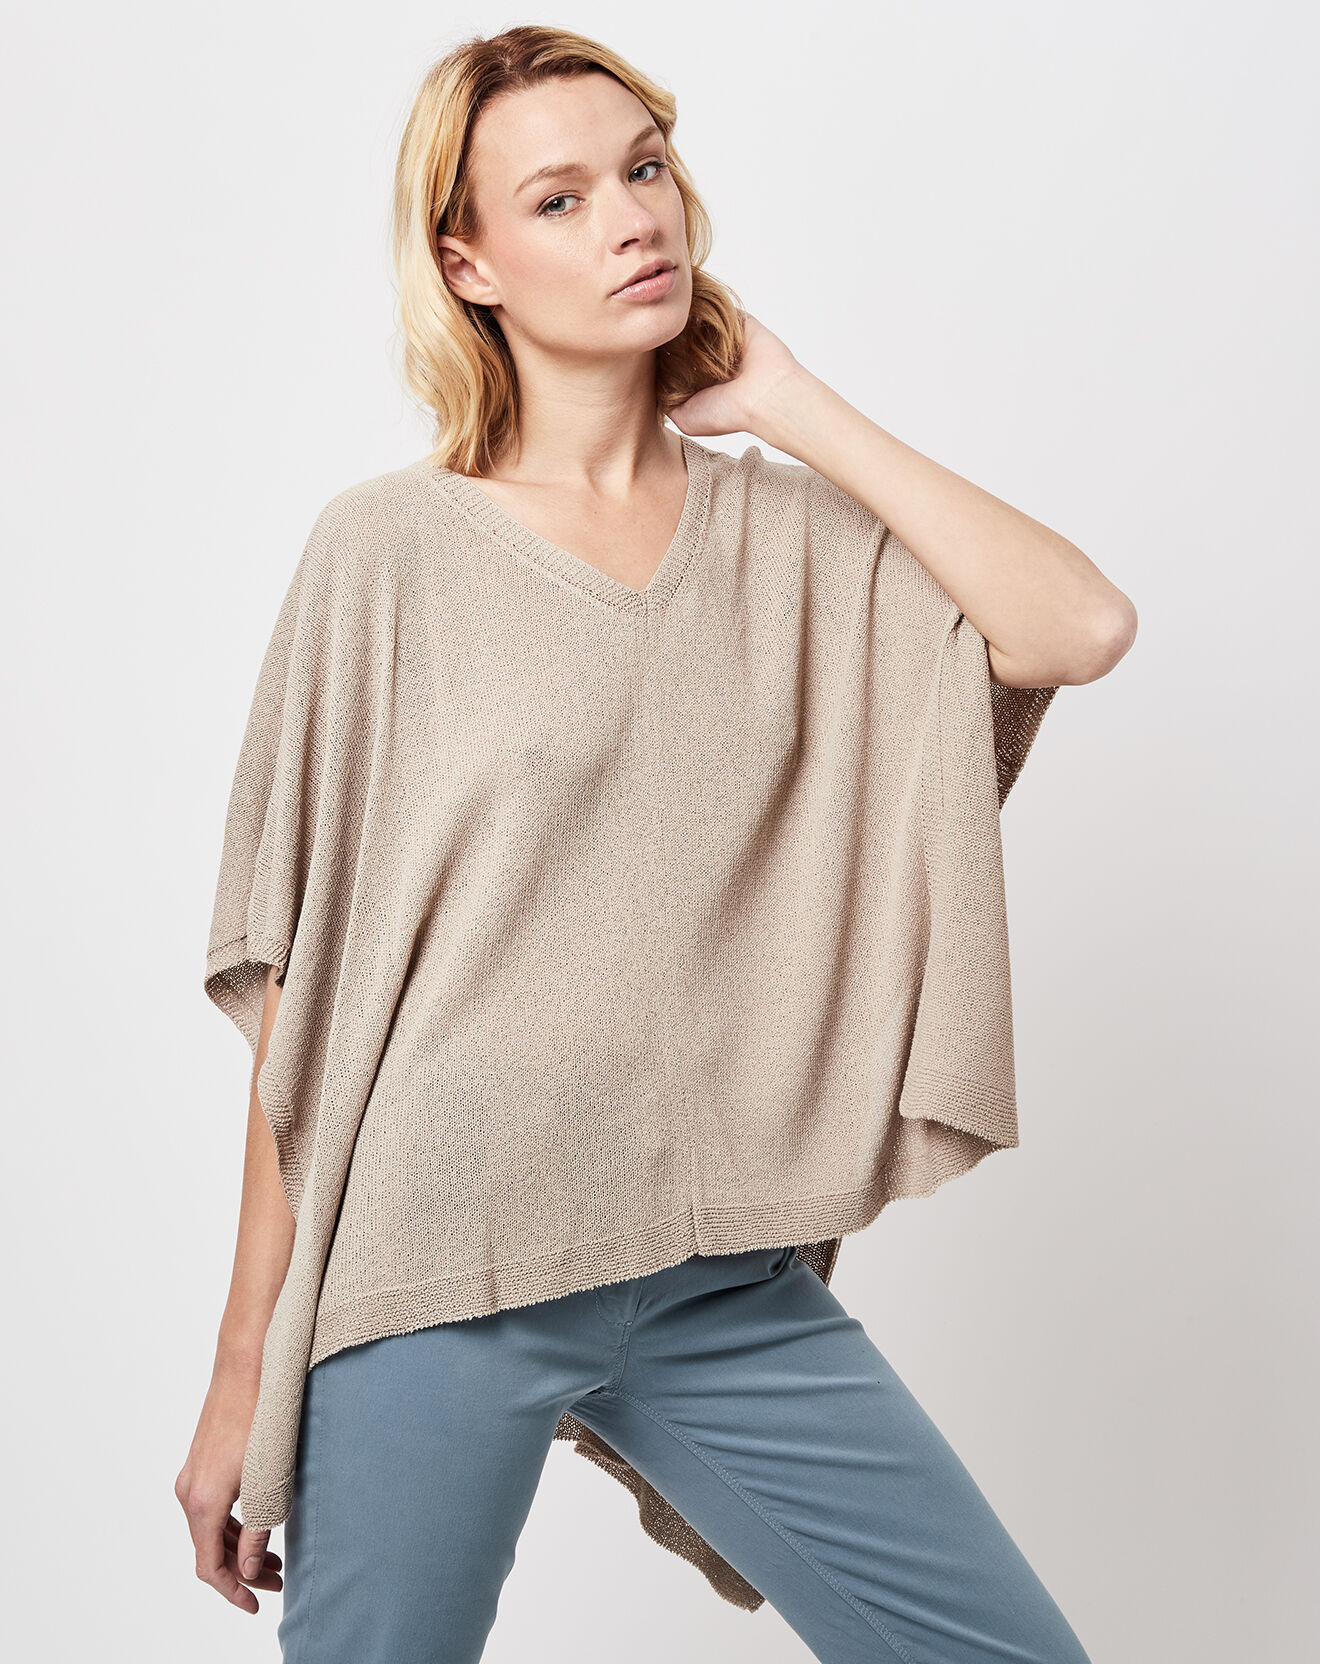 Pull poncho en maille fine sable